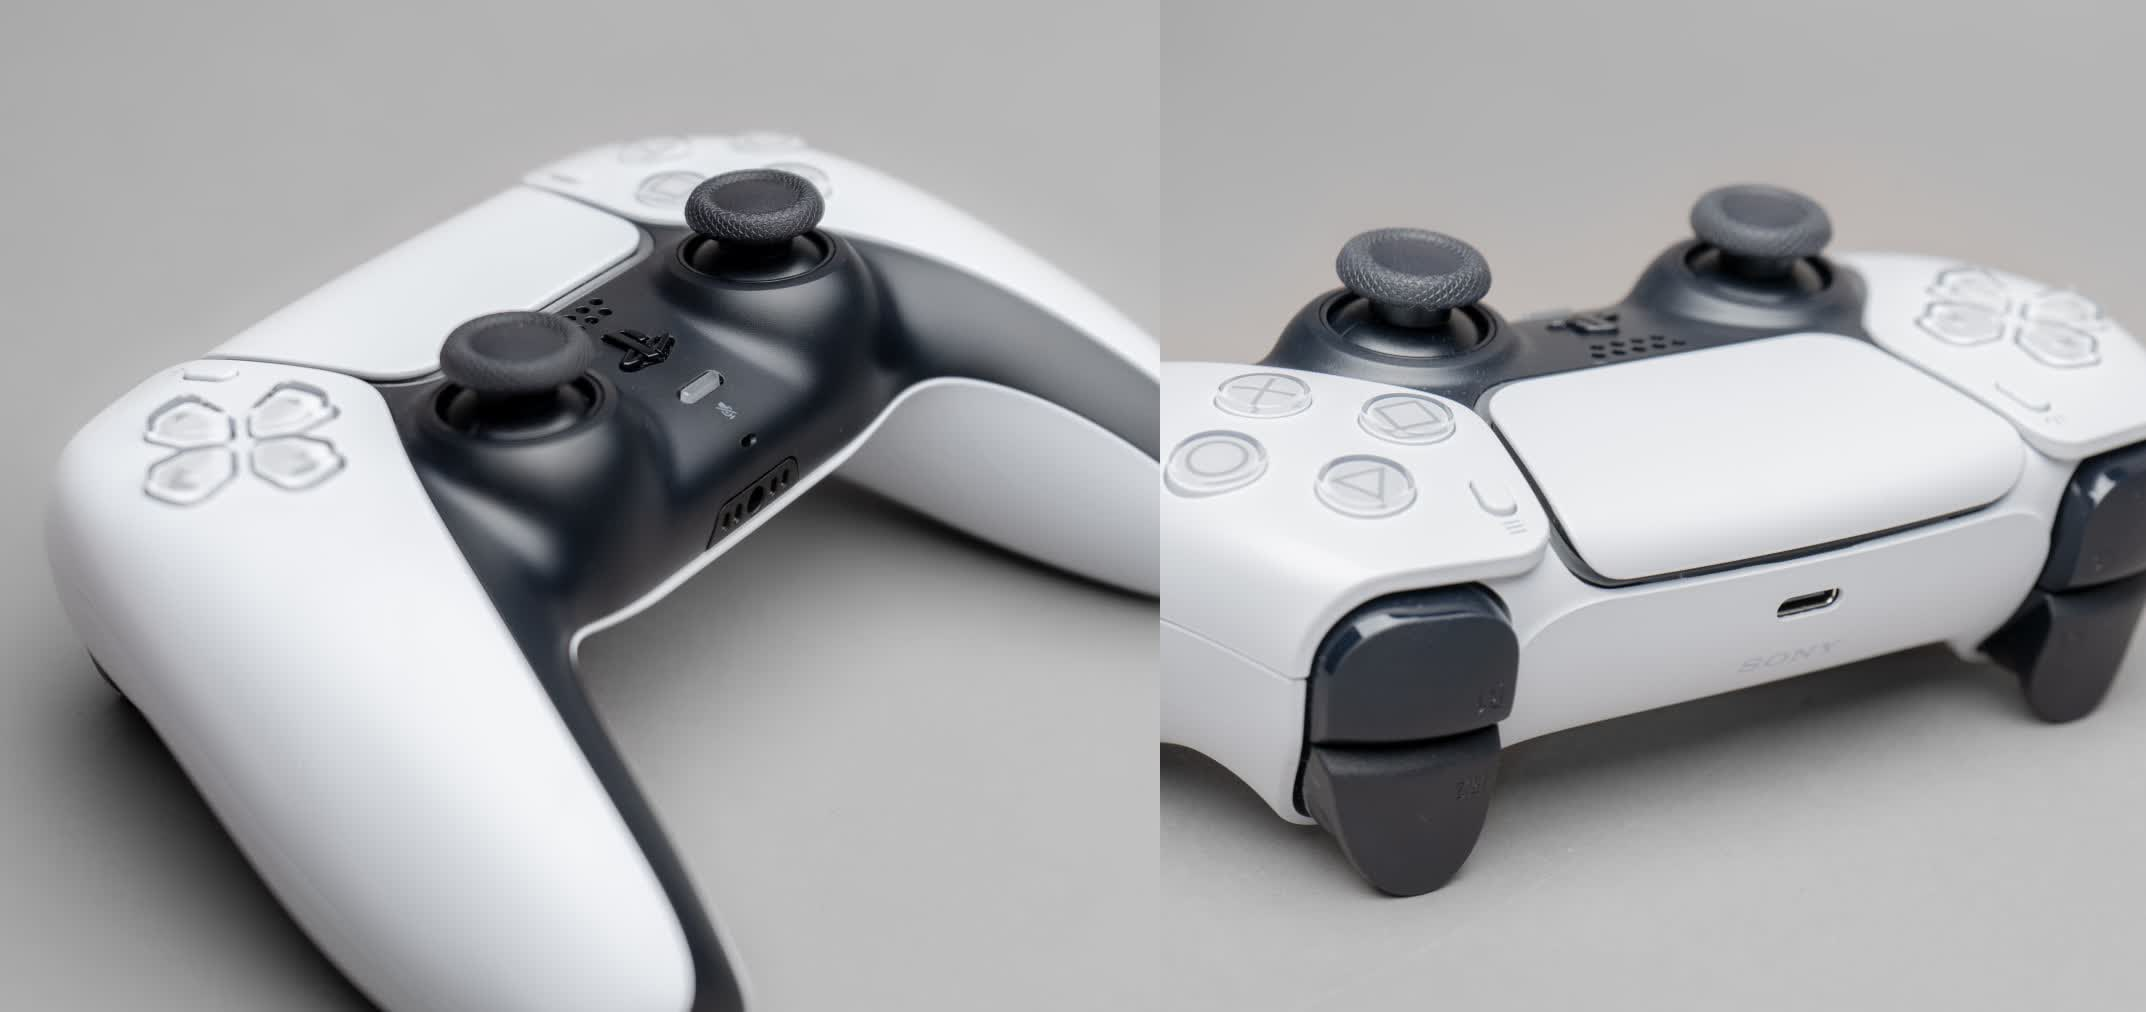 Increasing reports of PlayStation 5 controller drift are cause of concern